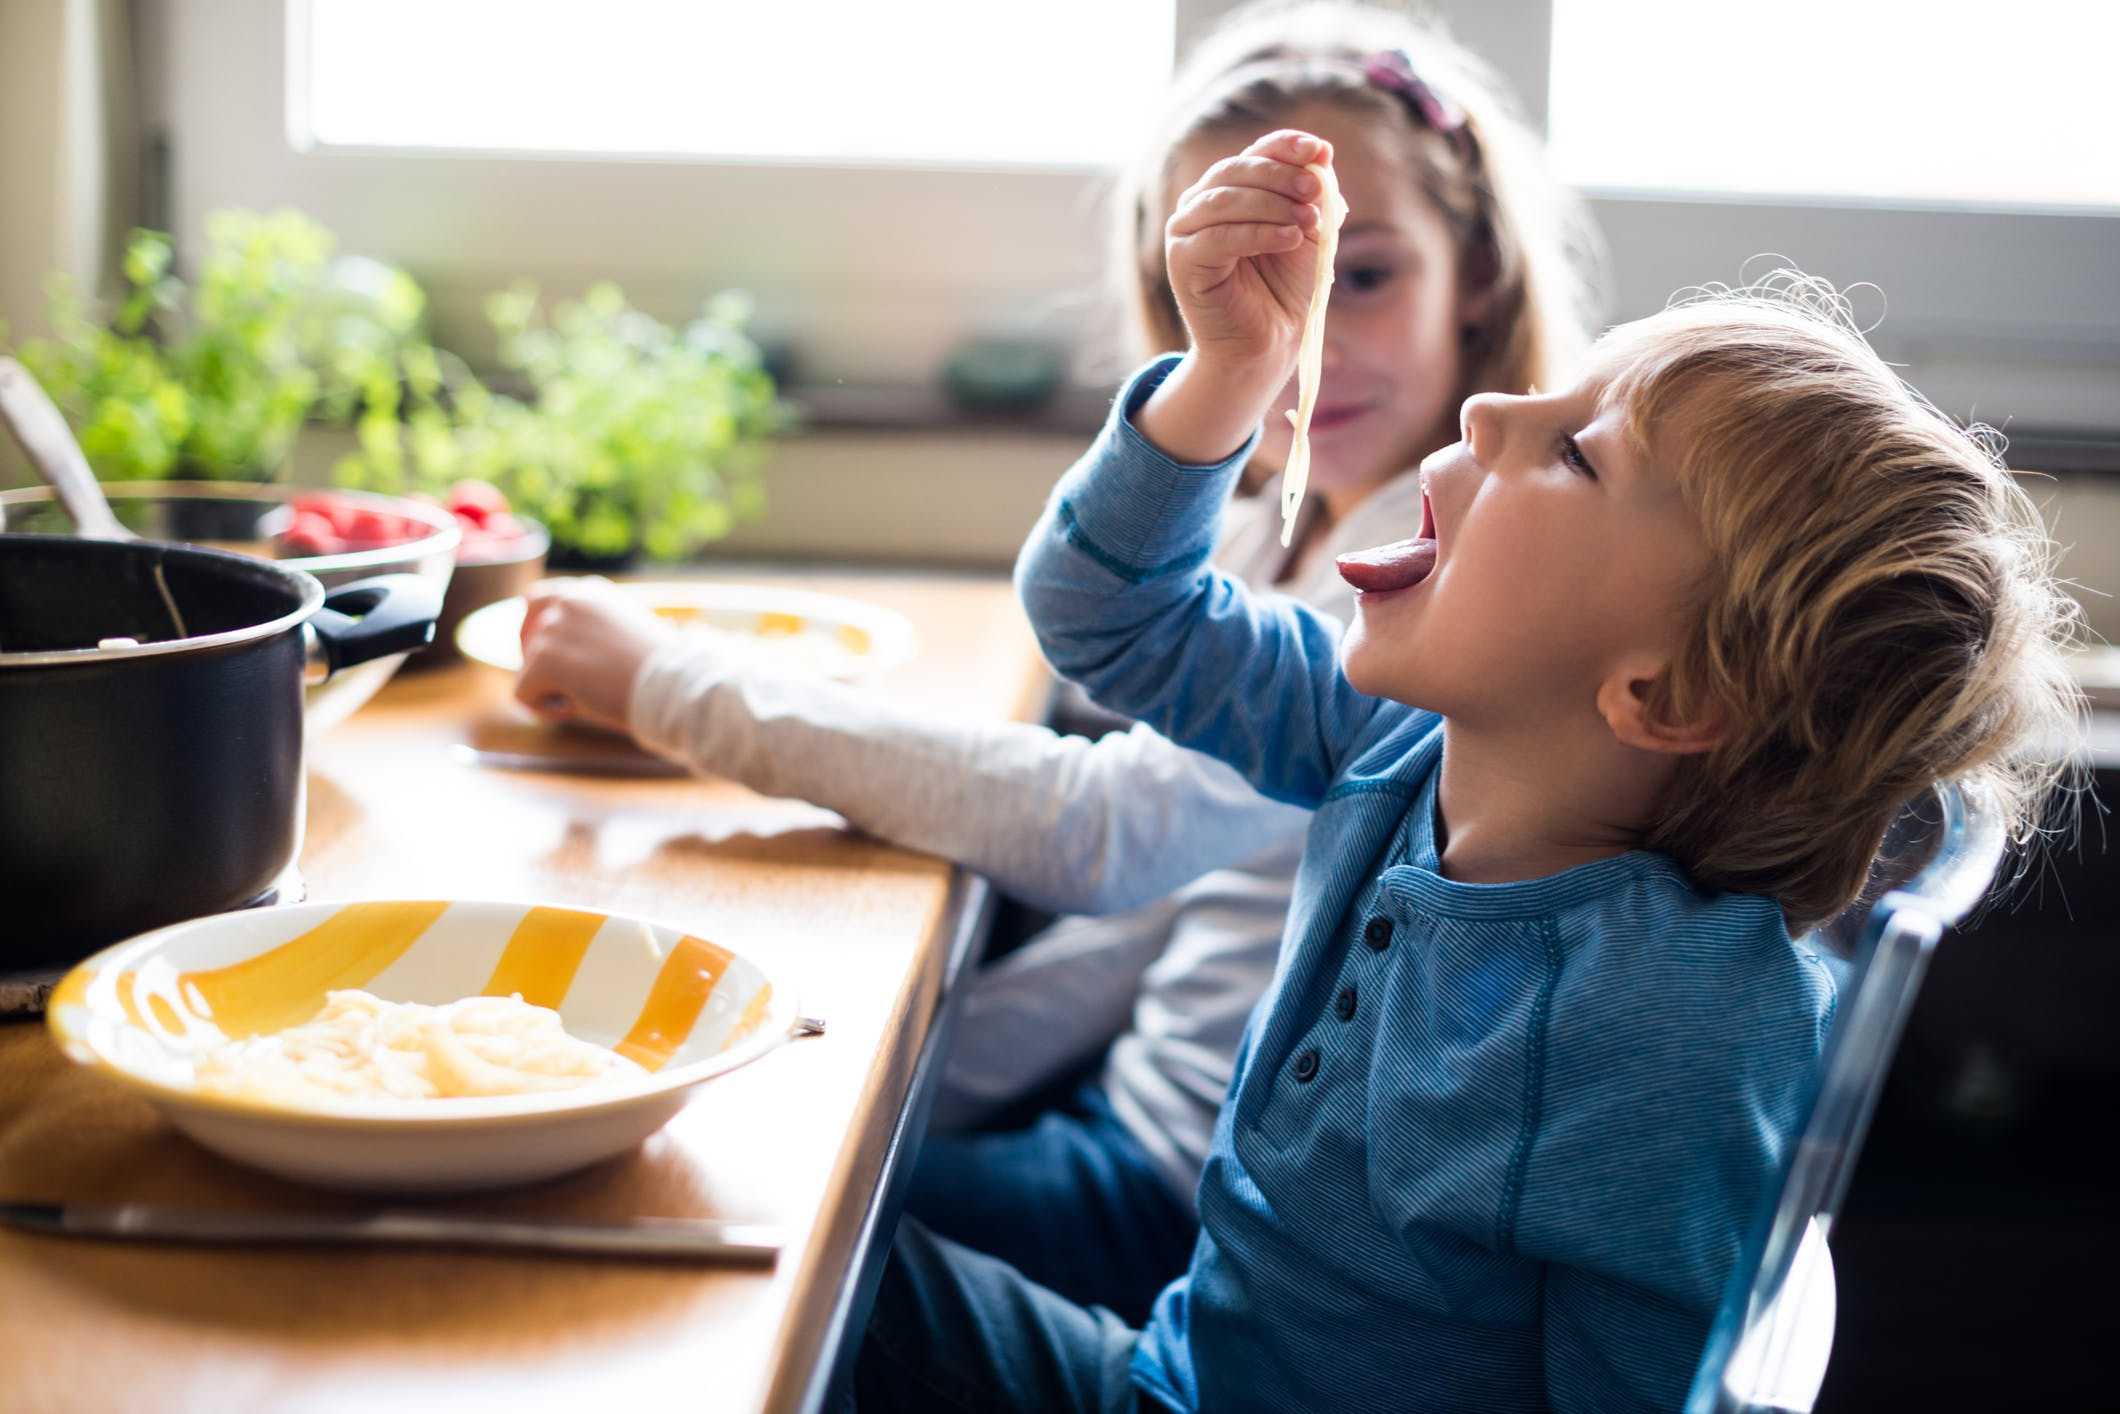 Children Who Eat Pasta Have a Better Diet Quality, Says the National Pasta Association